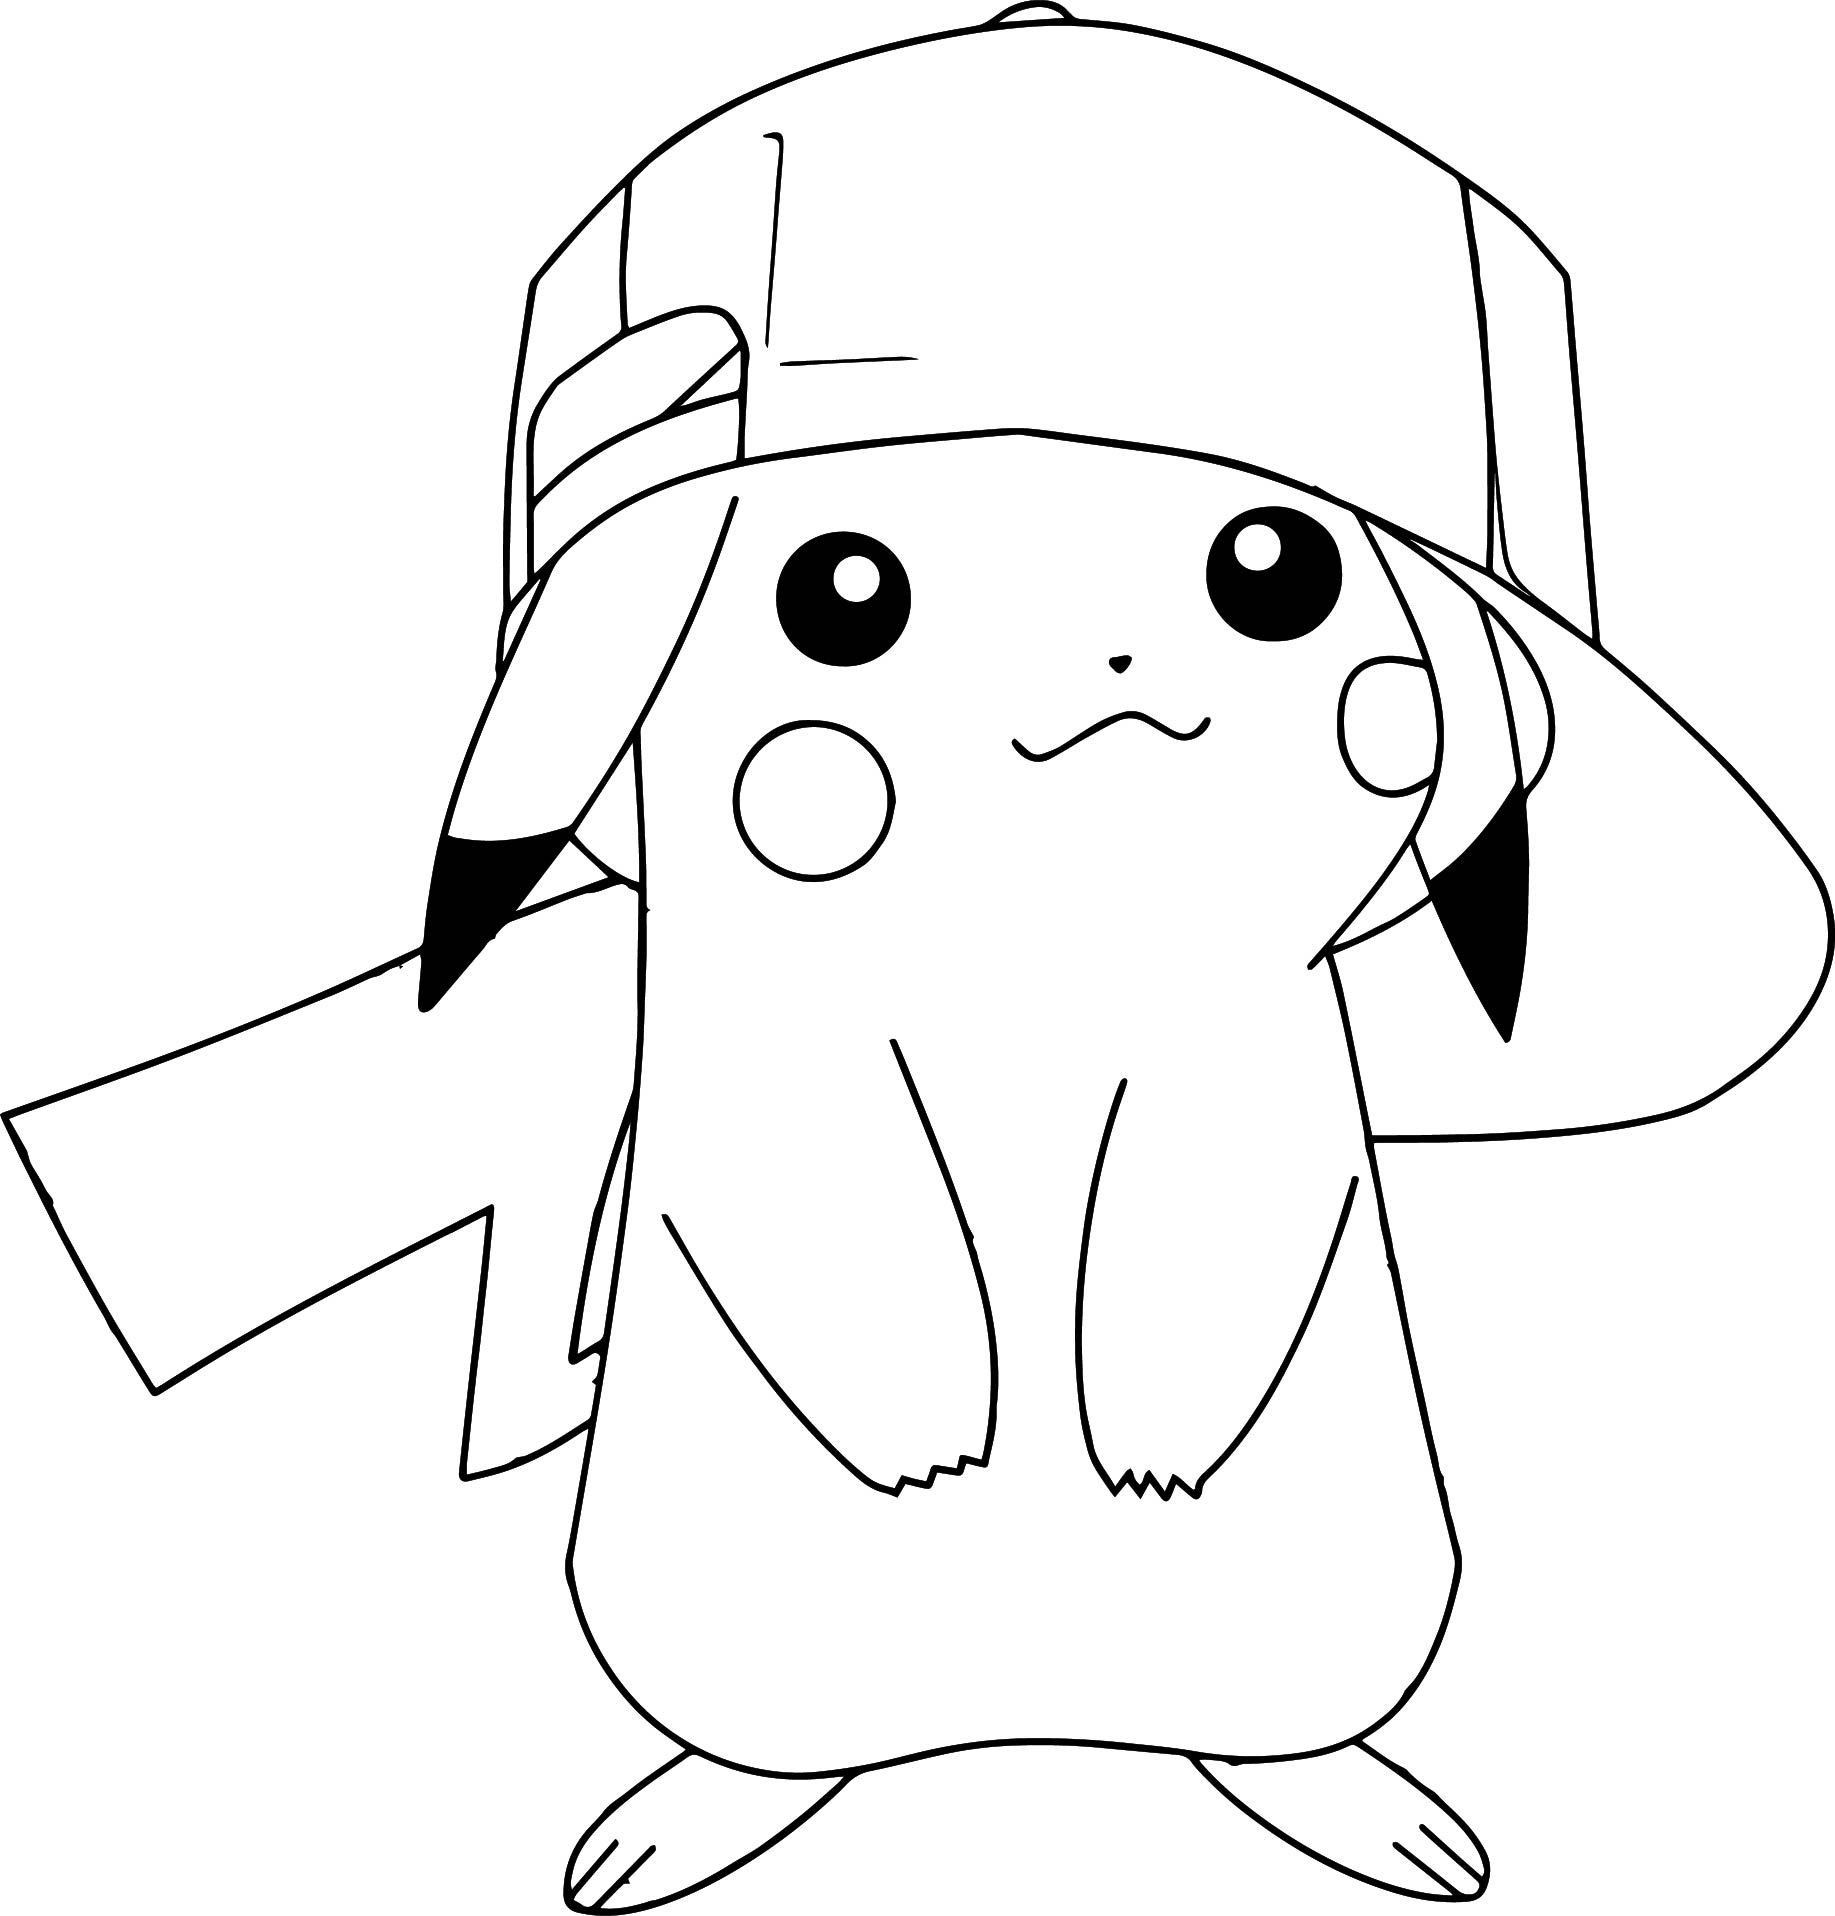 Pokemon Printable Coloring Pages Pikachu (With images